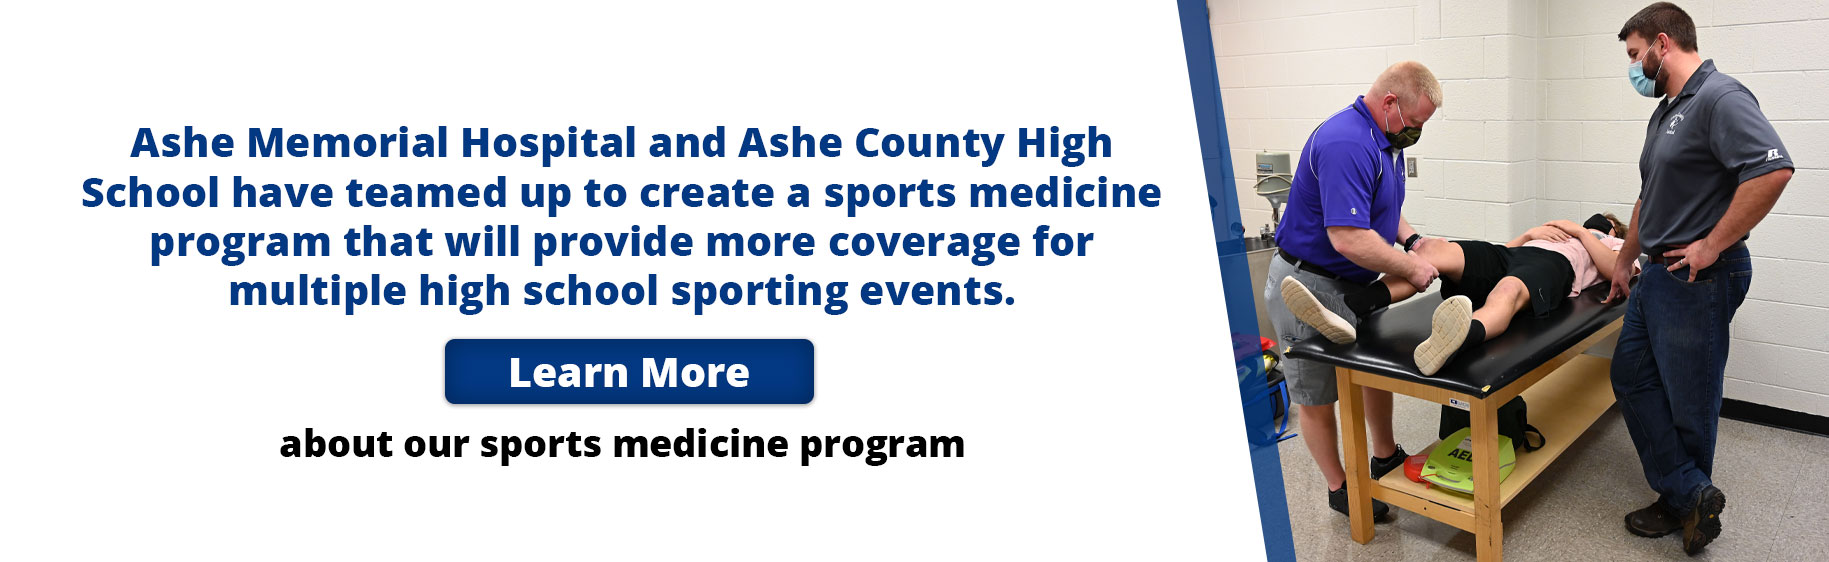 Ashe Memorial Hospital and Ashe County High School have teamed up to create a sports medicine program that will provide more coverage for multiple high school sporting events. Learn more about our sports medicine program